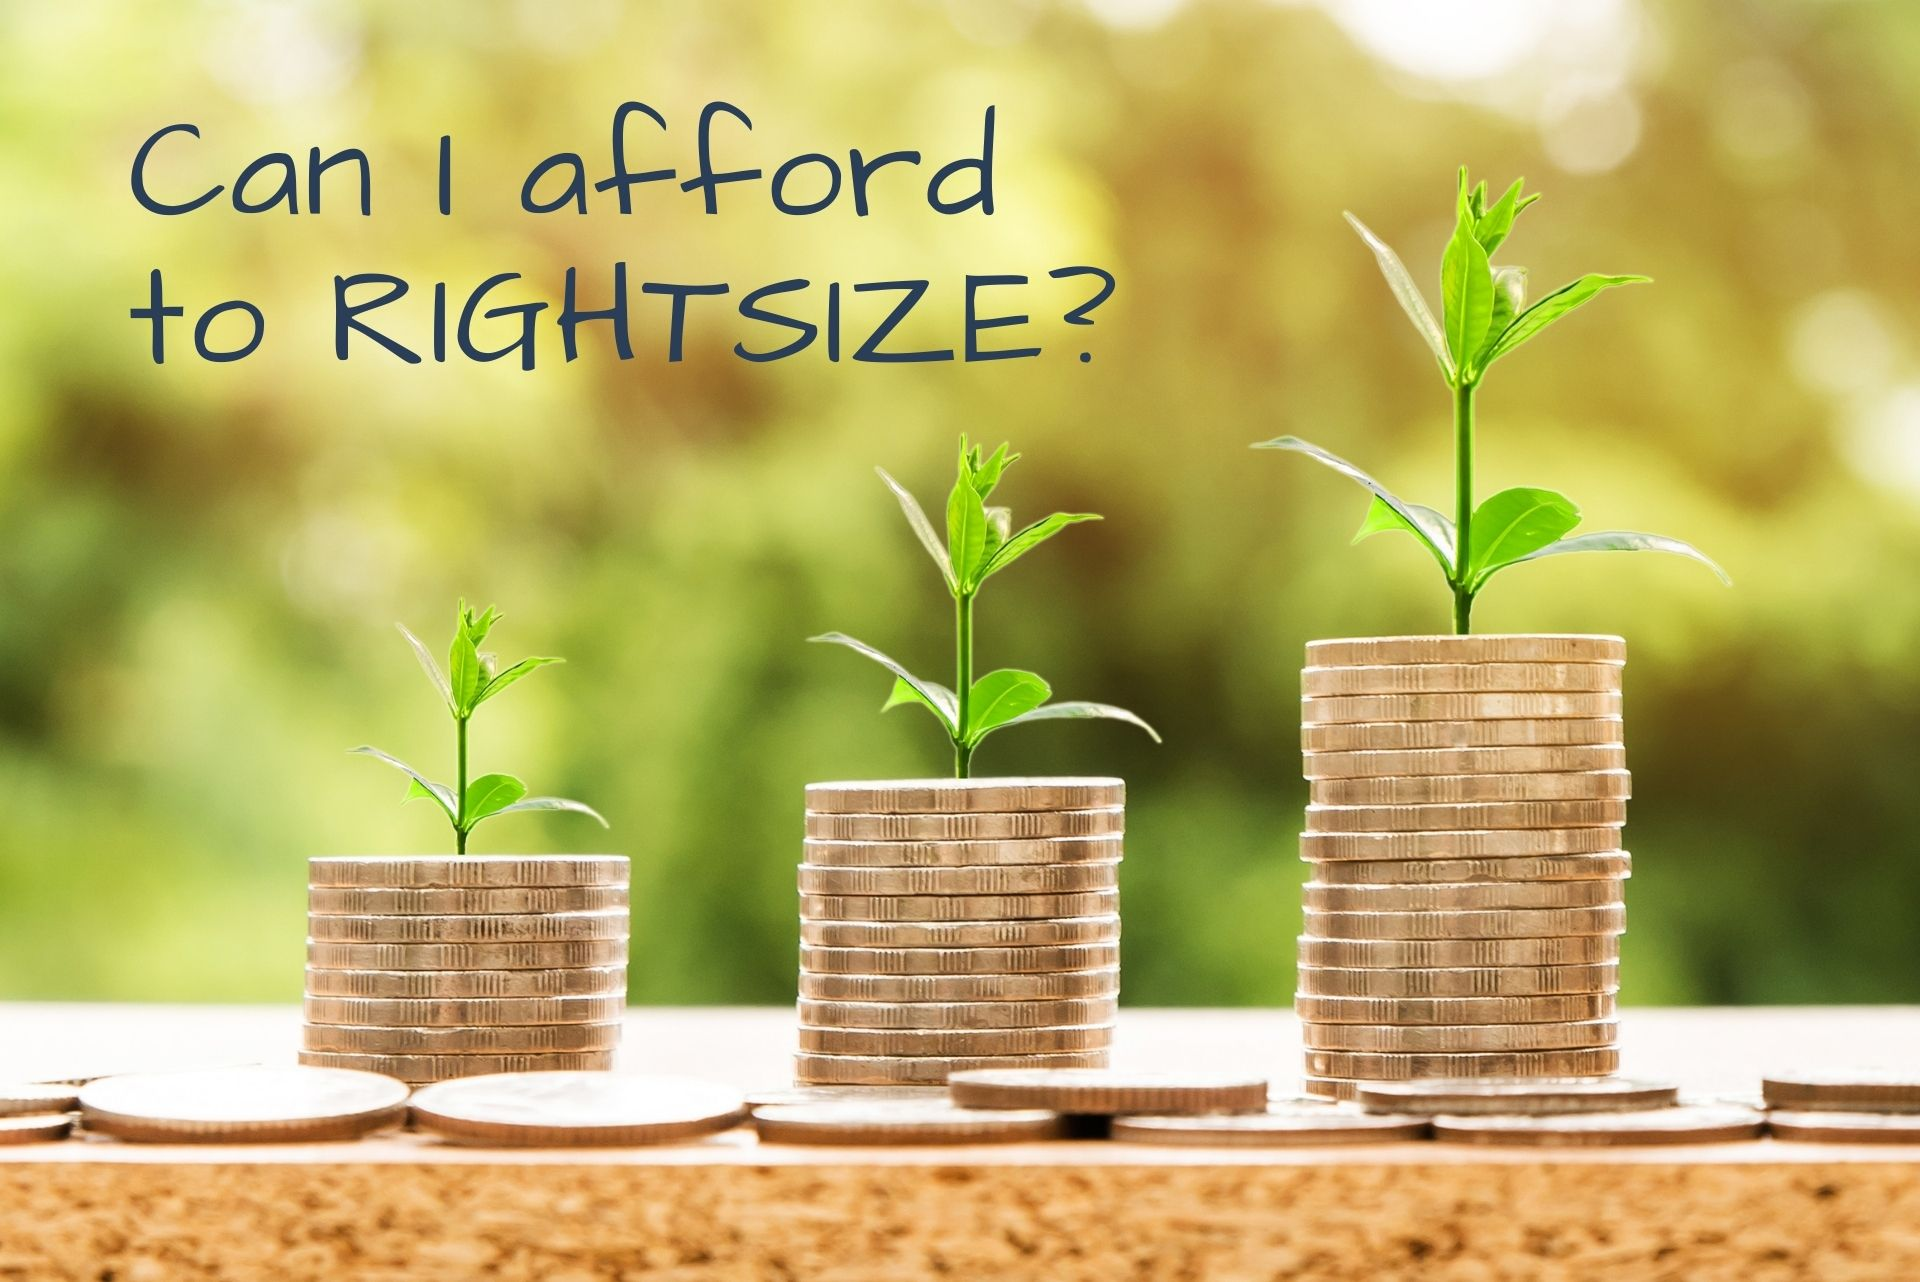 can I afford to rightsize - Rightsize Your Home